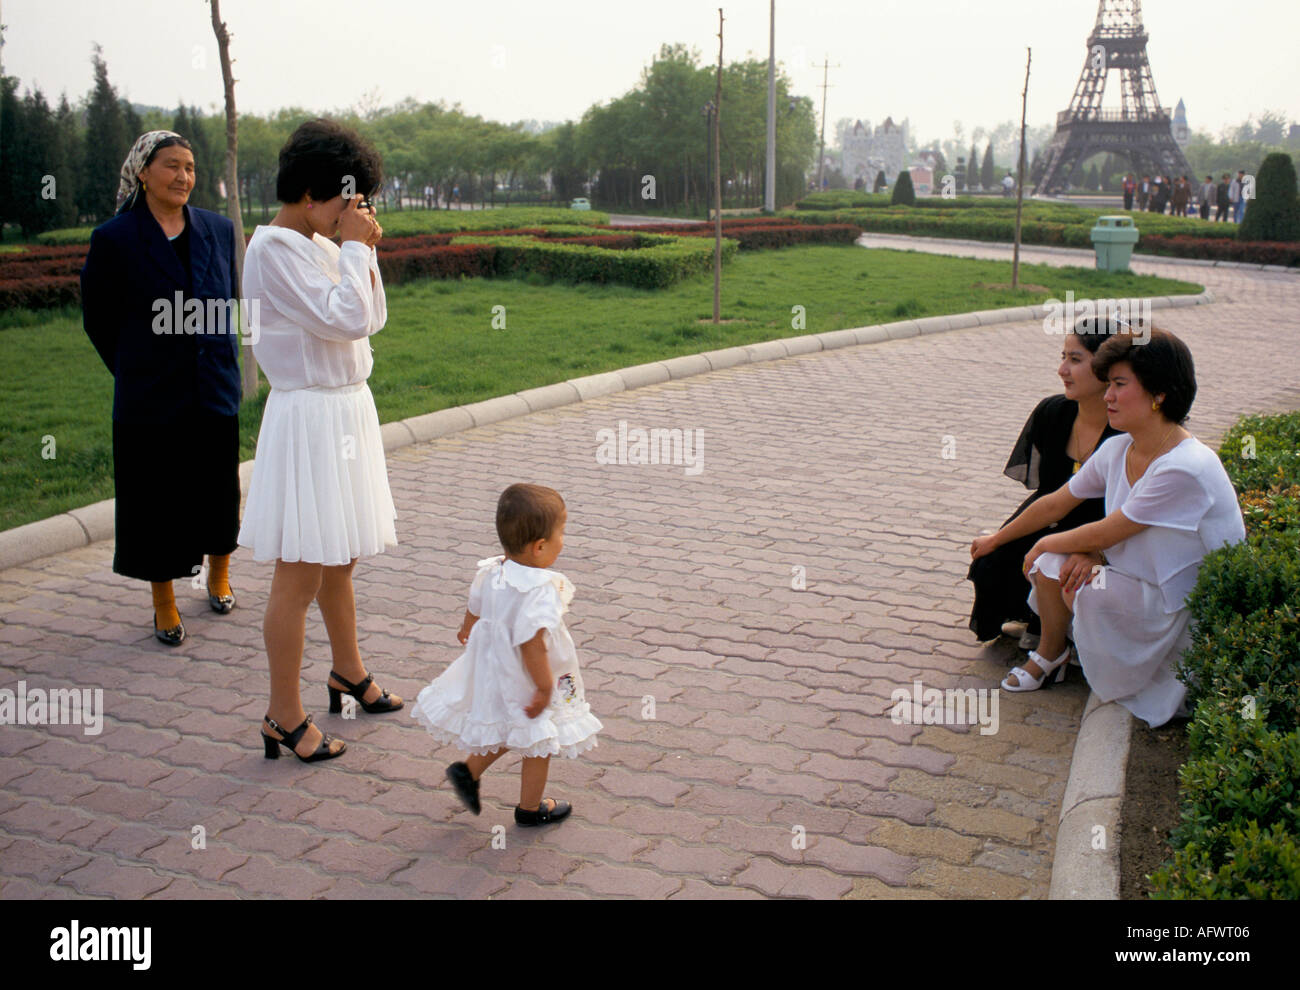 WORLD PARK BEIJING CHINA  TOURIST POSES FOR FAMILY SNAP  SHOTS WITH EIFLE TOWER IN THE  DISTANCE - Stock Image